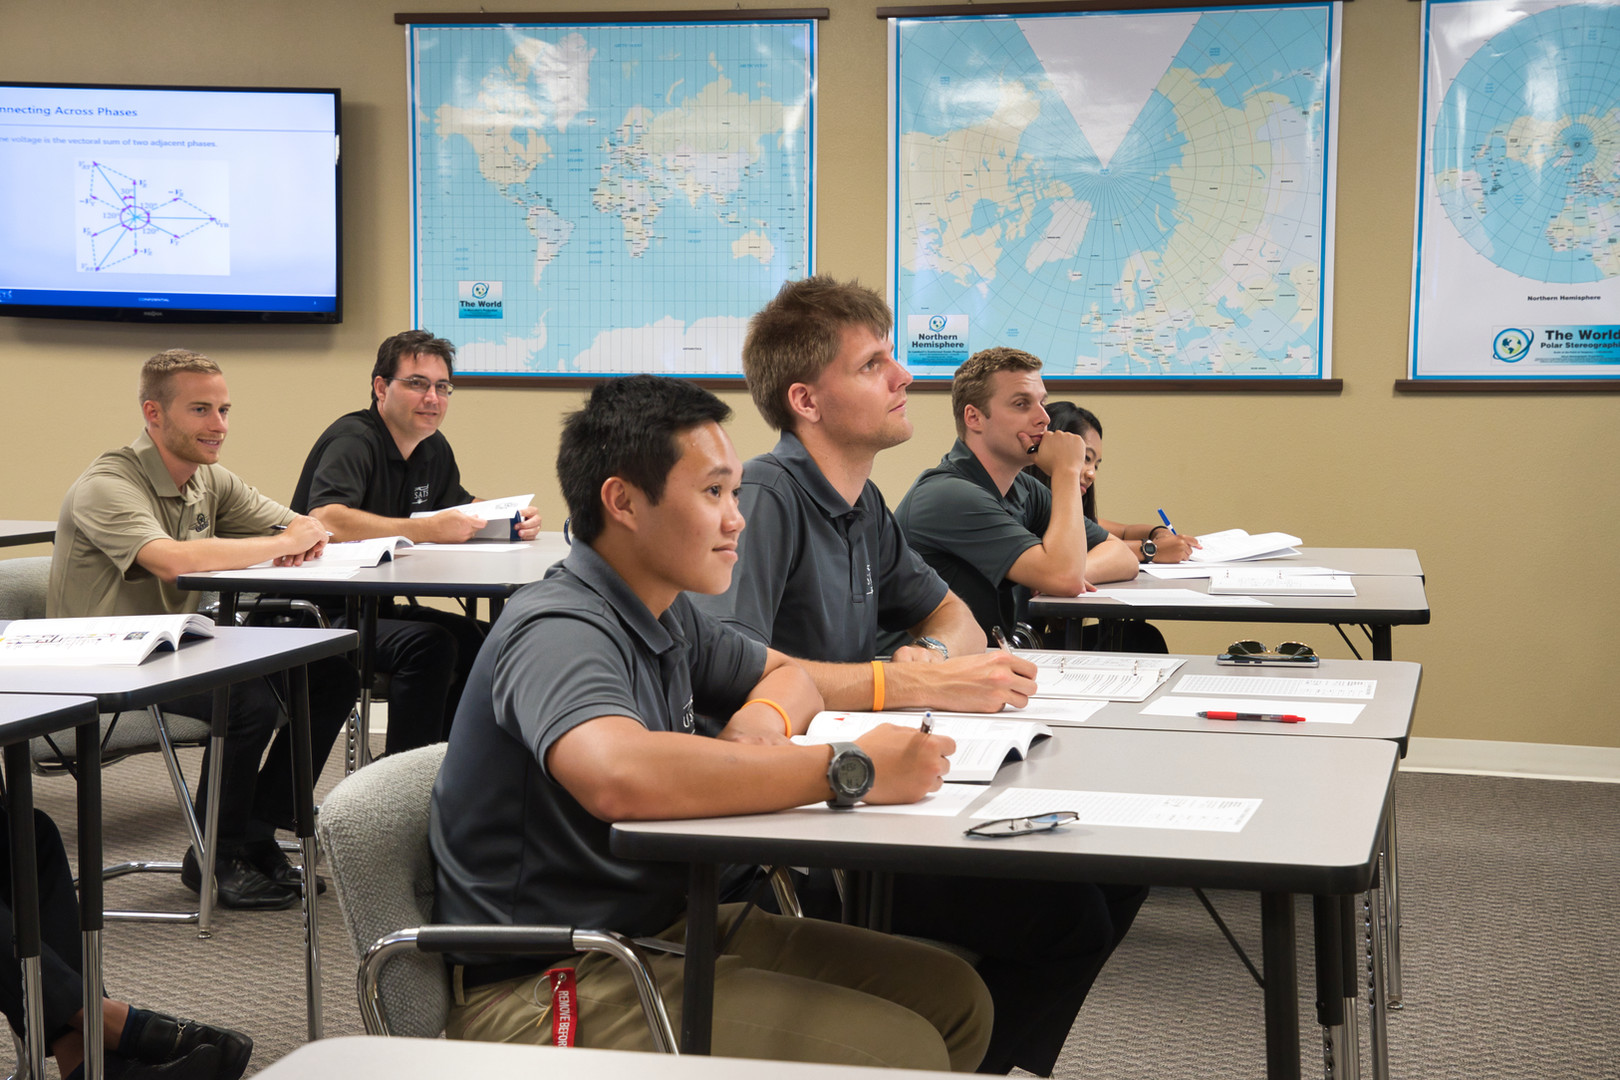 Students Training to be Pilots